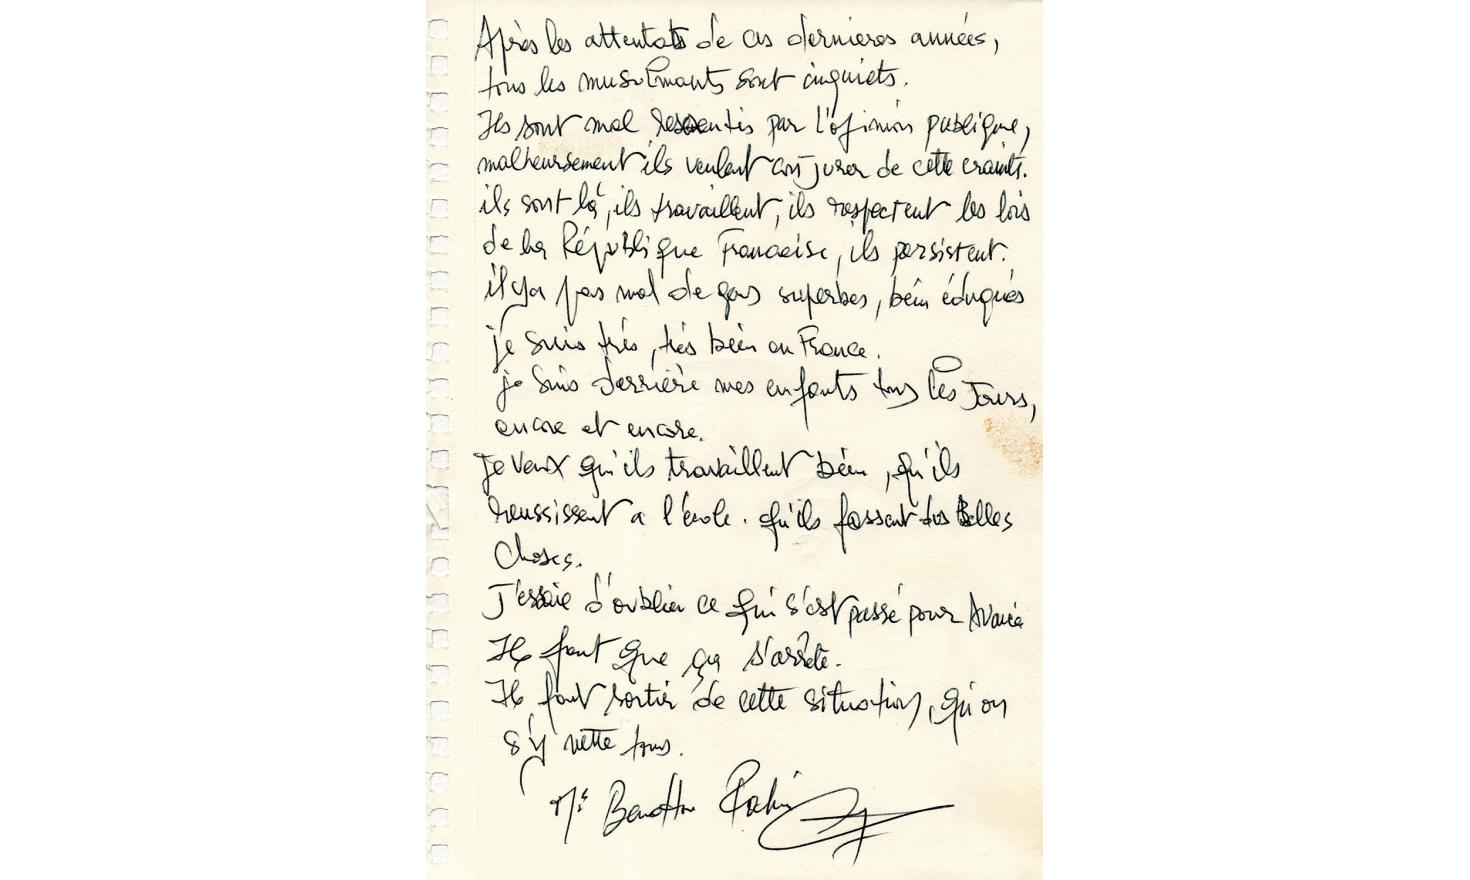 Rahim Benatou's handwritten text